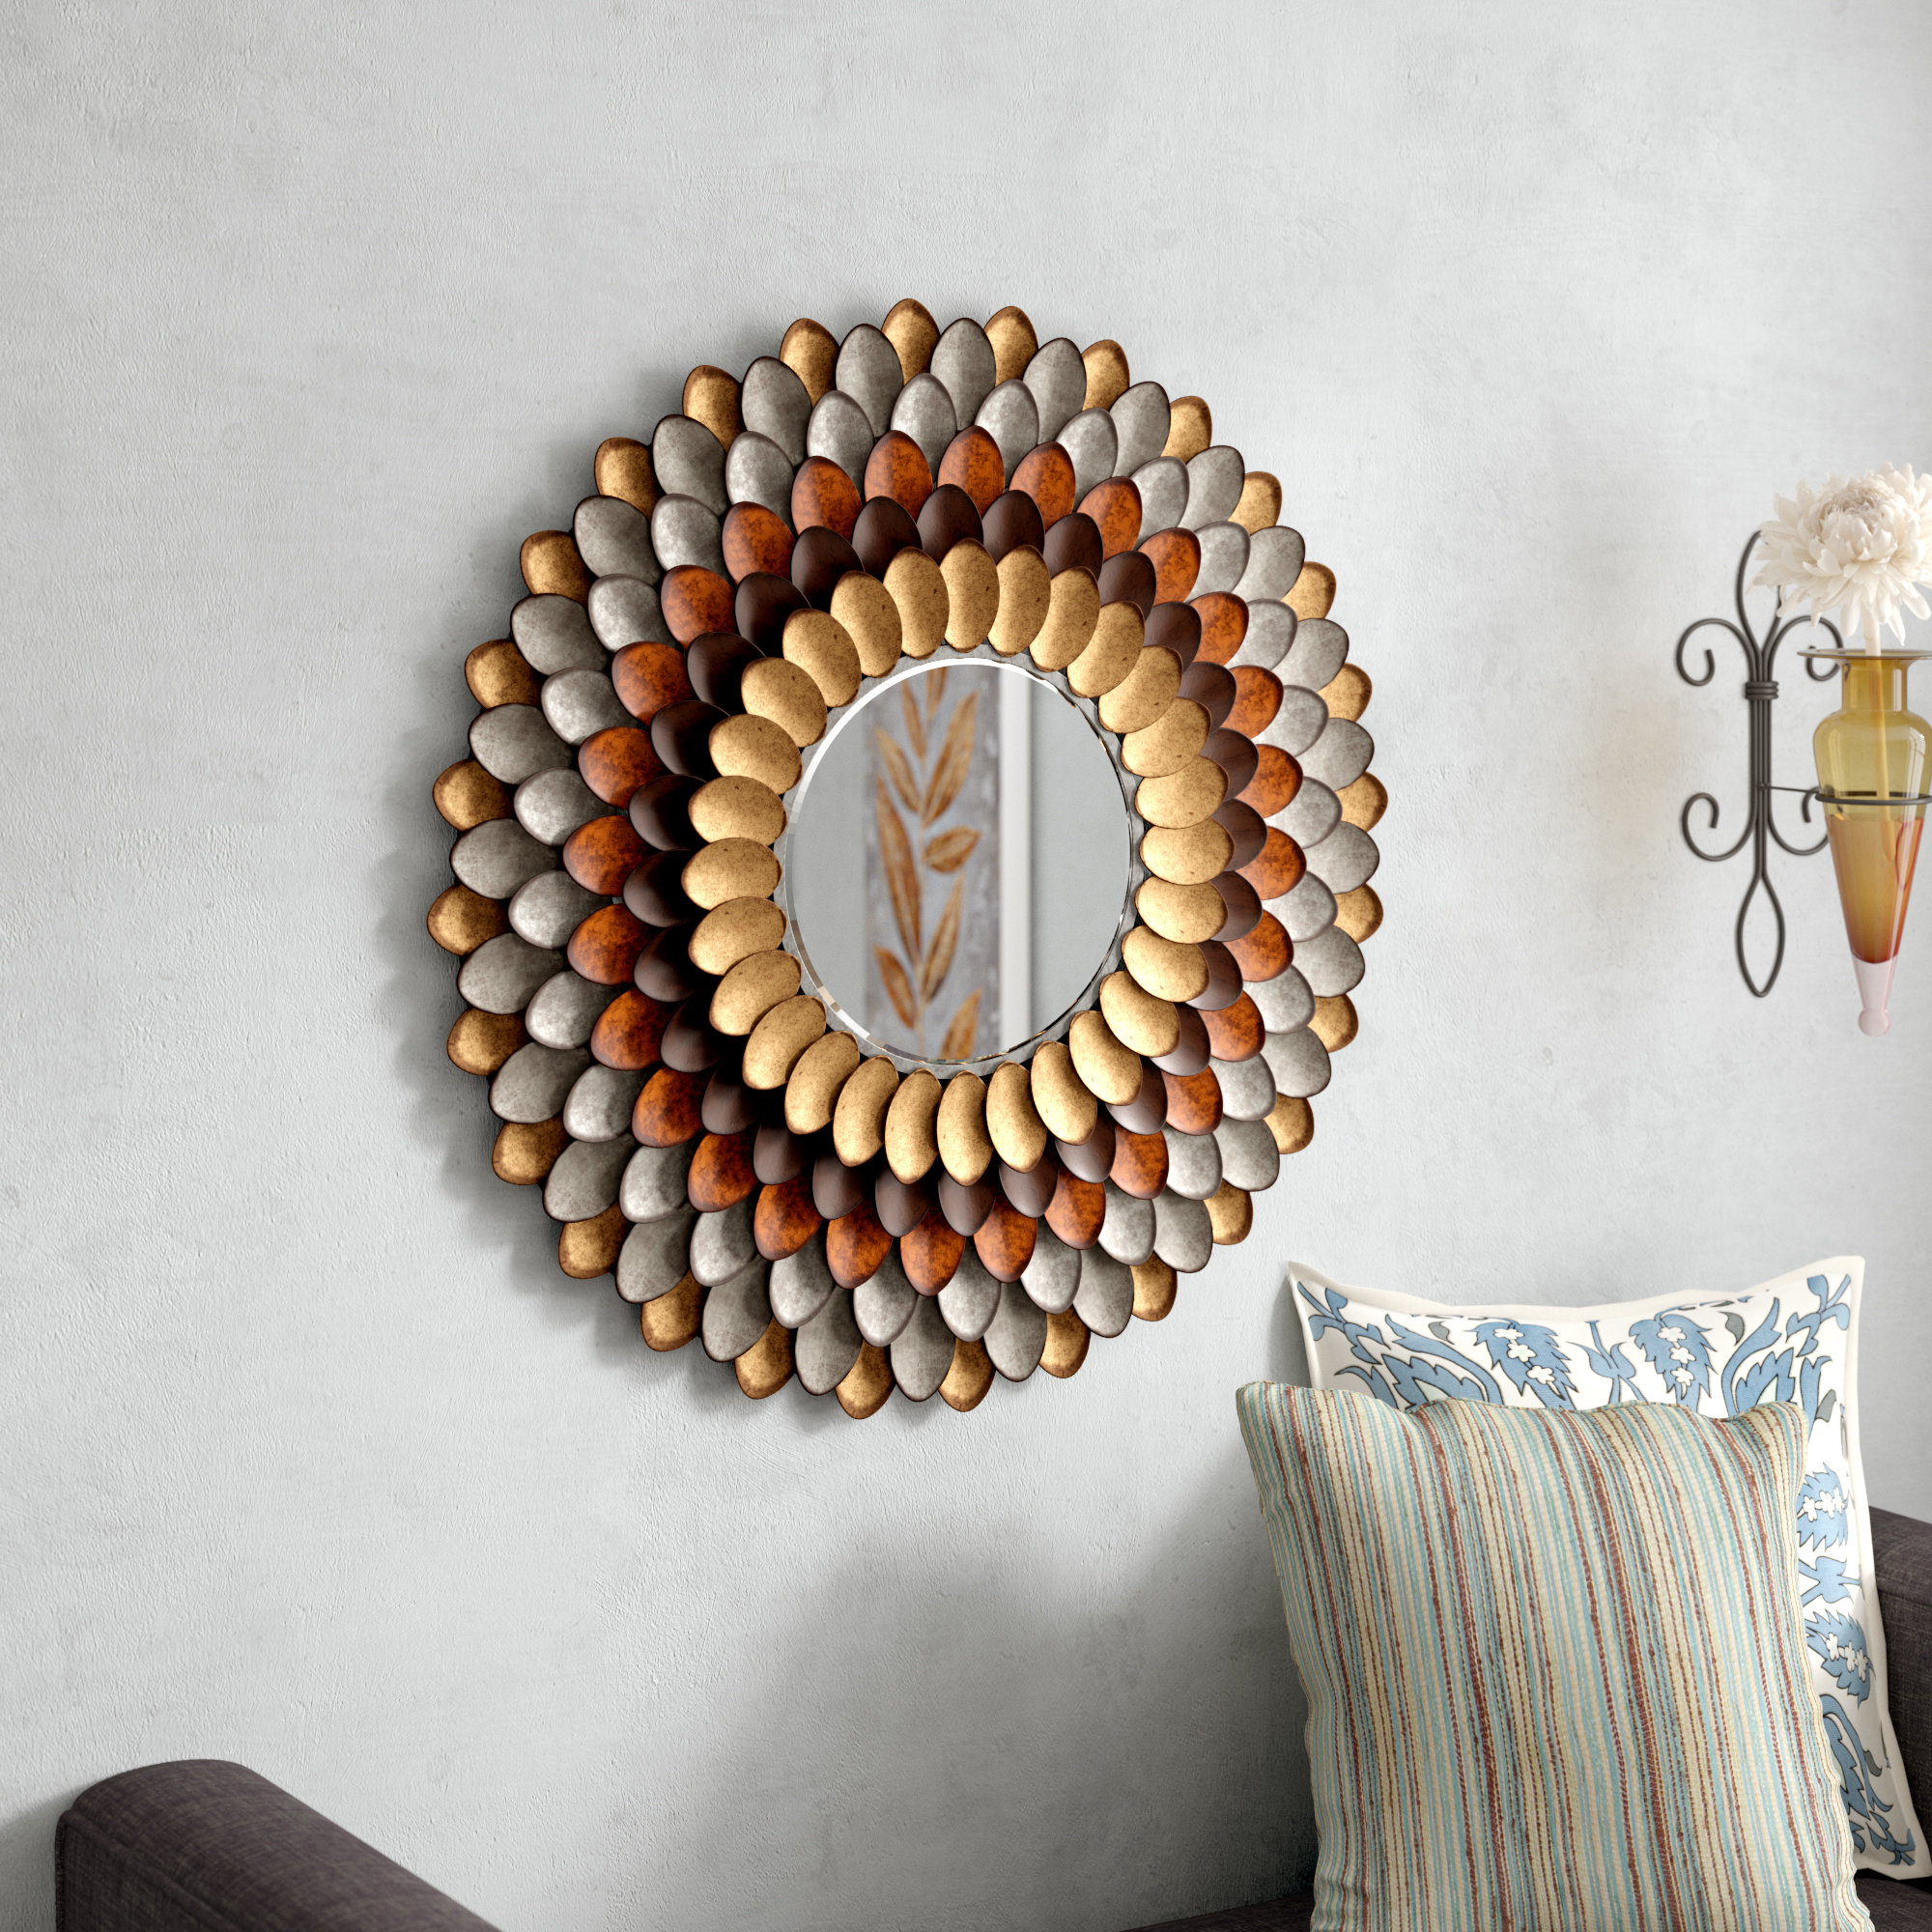 Decorative Round Wall Mirror For Decorative Round Wall Mirrors (View 4 of 20)